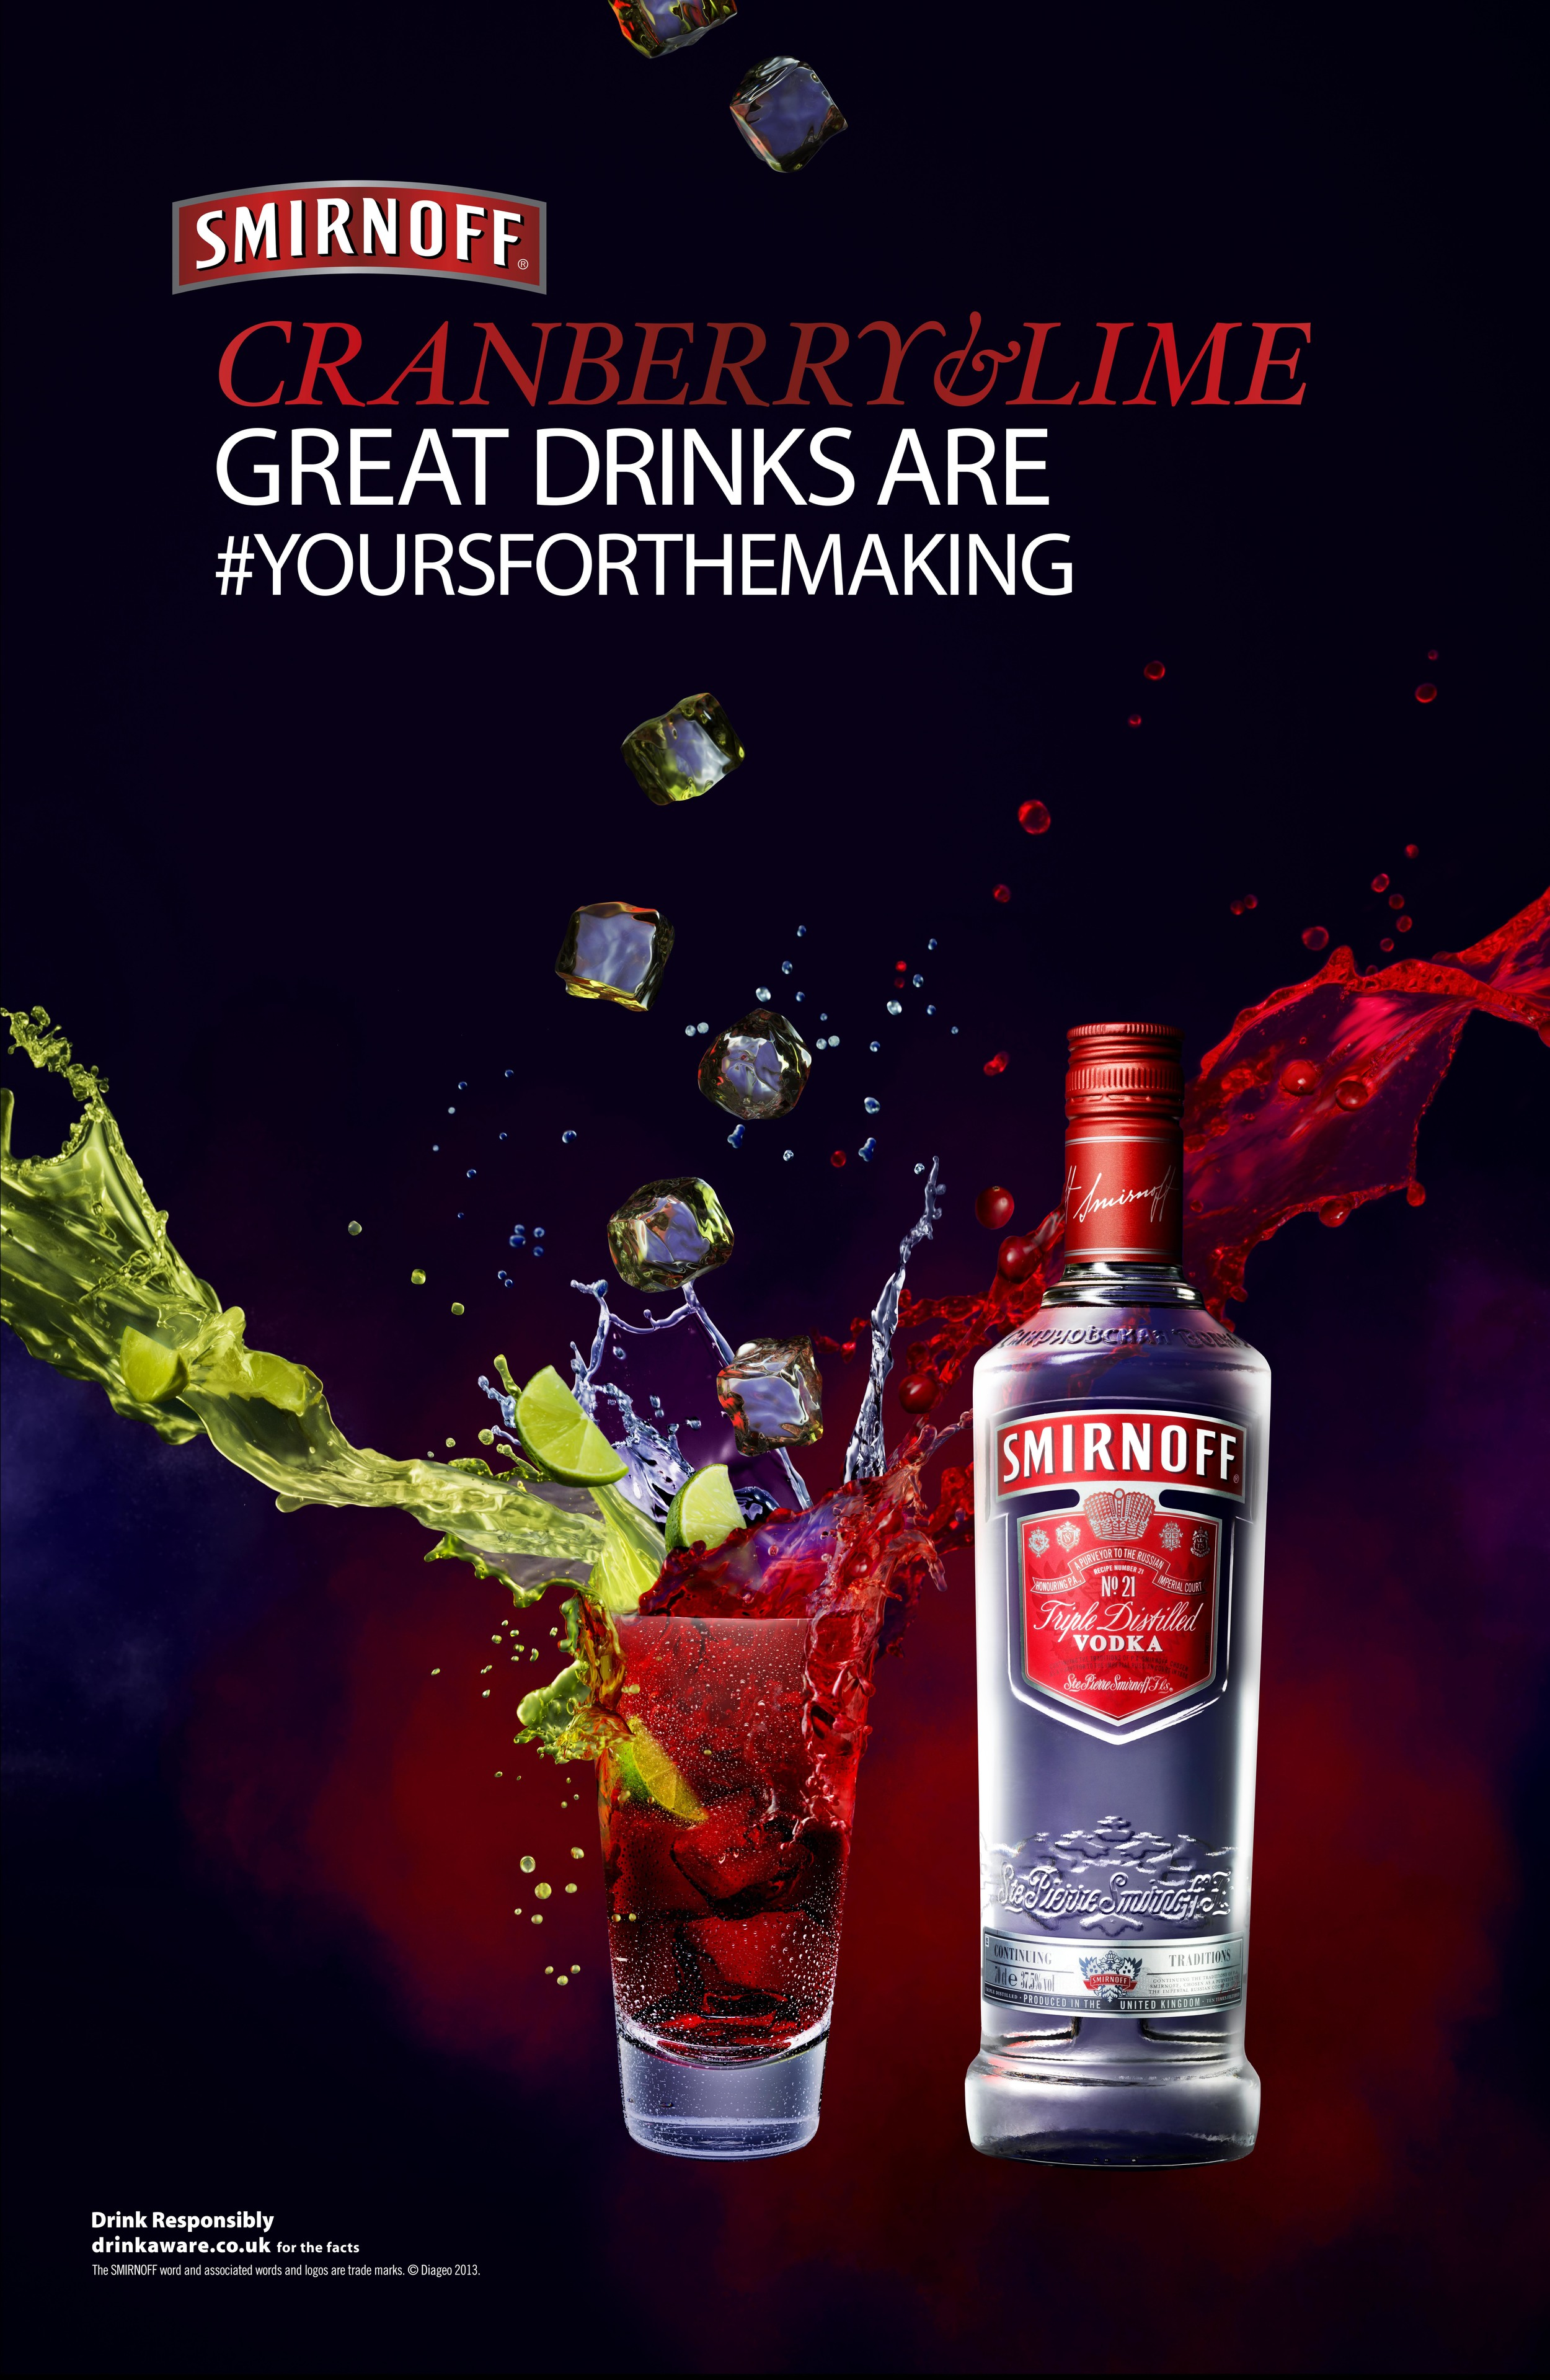 Smirnoff Cranberry and Lime  Photographer: Jonathan Knowles  Agency: JWT London